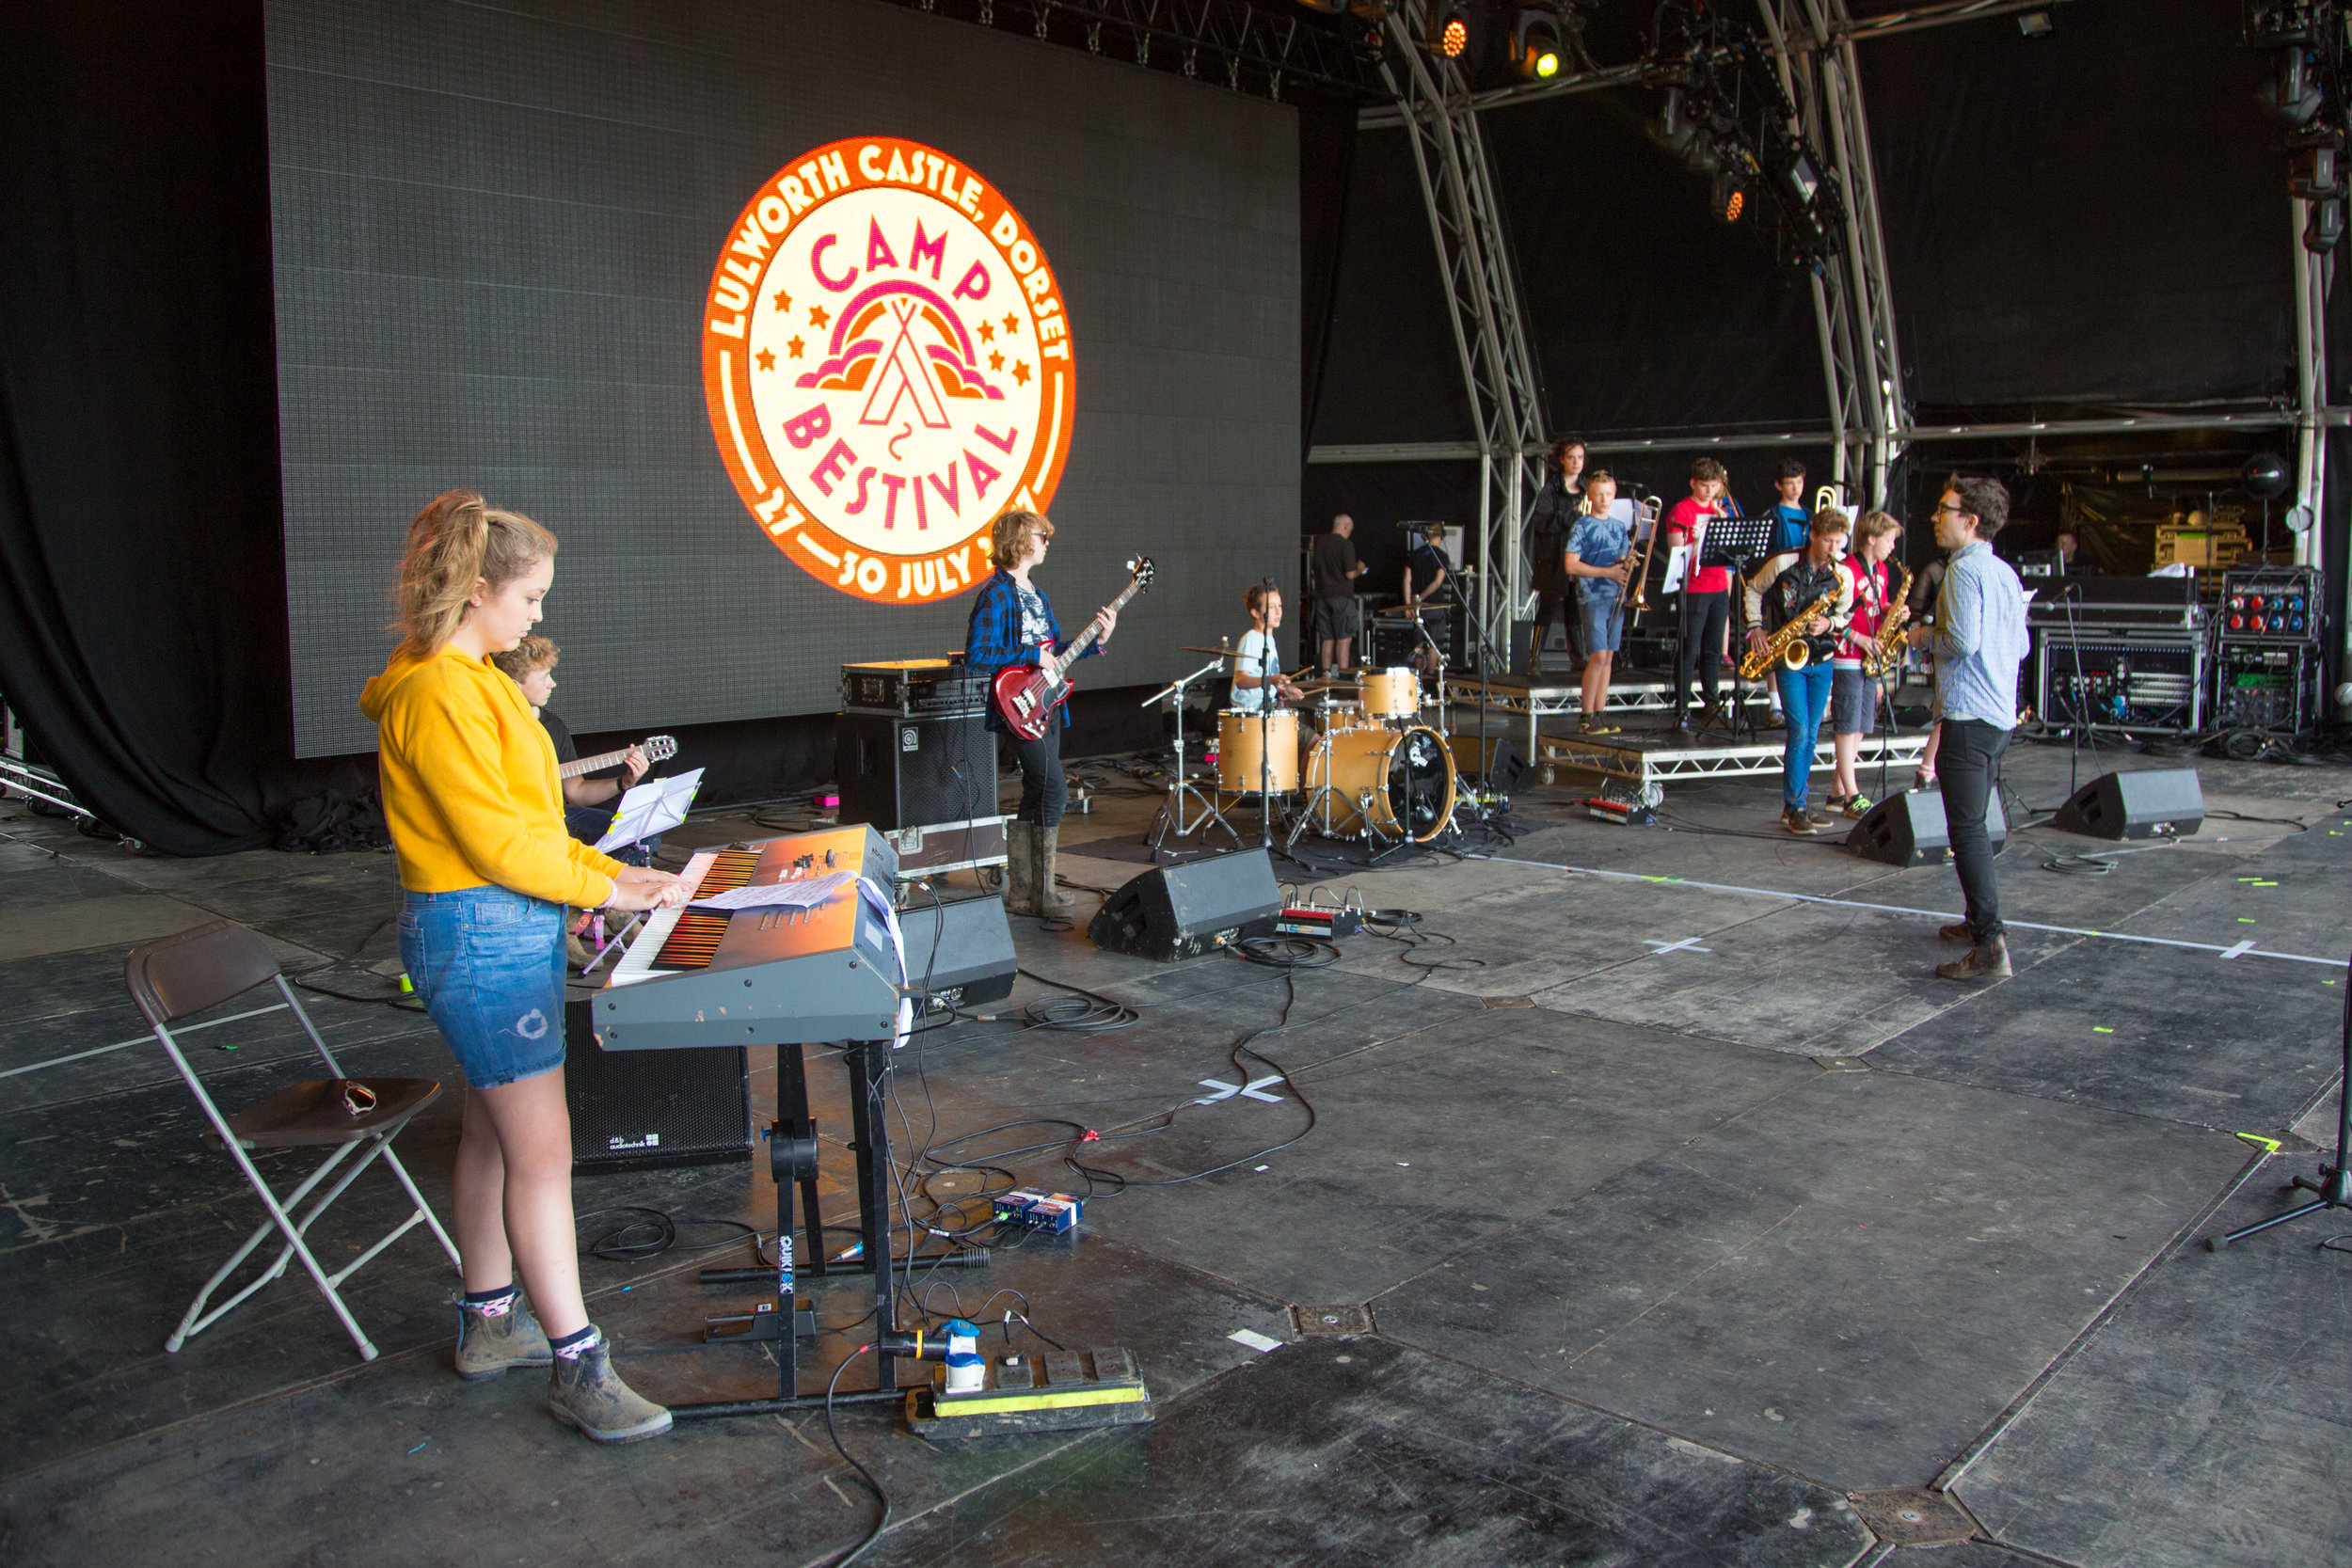 Leading workshop for Ronnie Scott's @ Camp Bestival   Photo Credit Robin Ball  http://www.robinballphotography.com